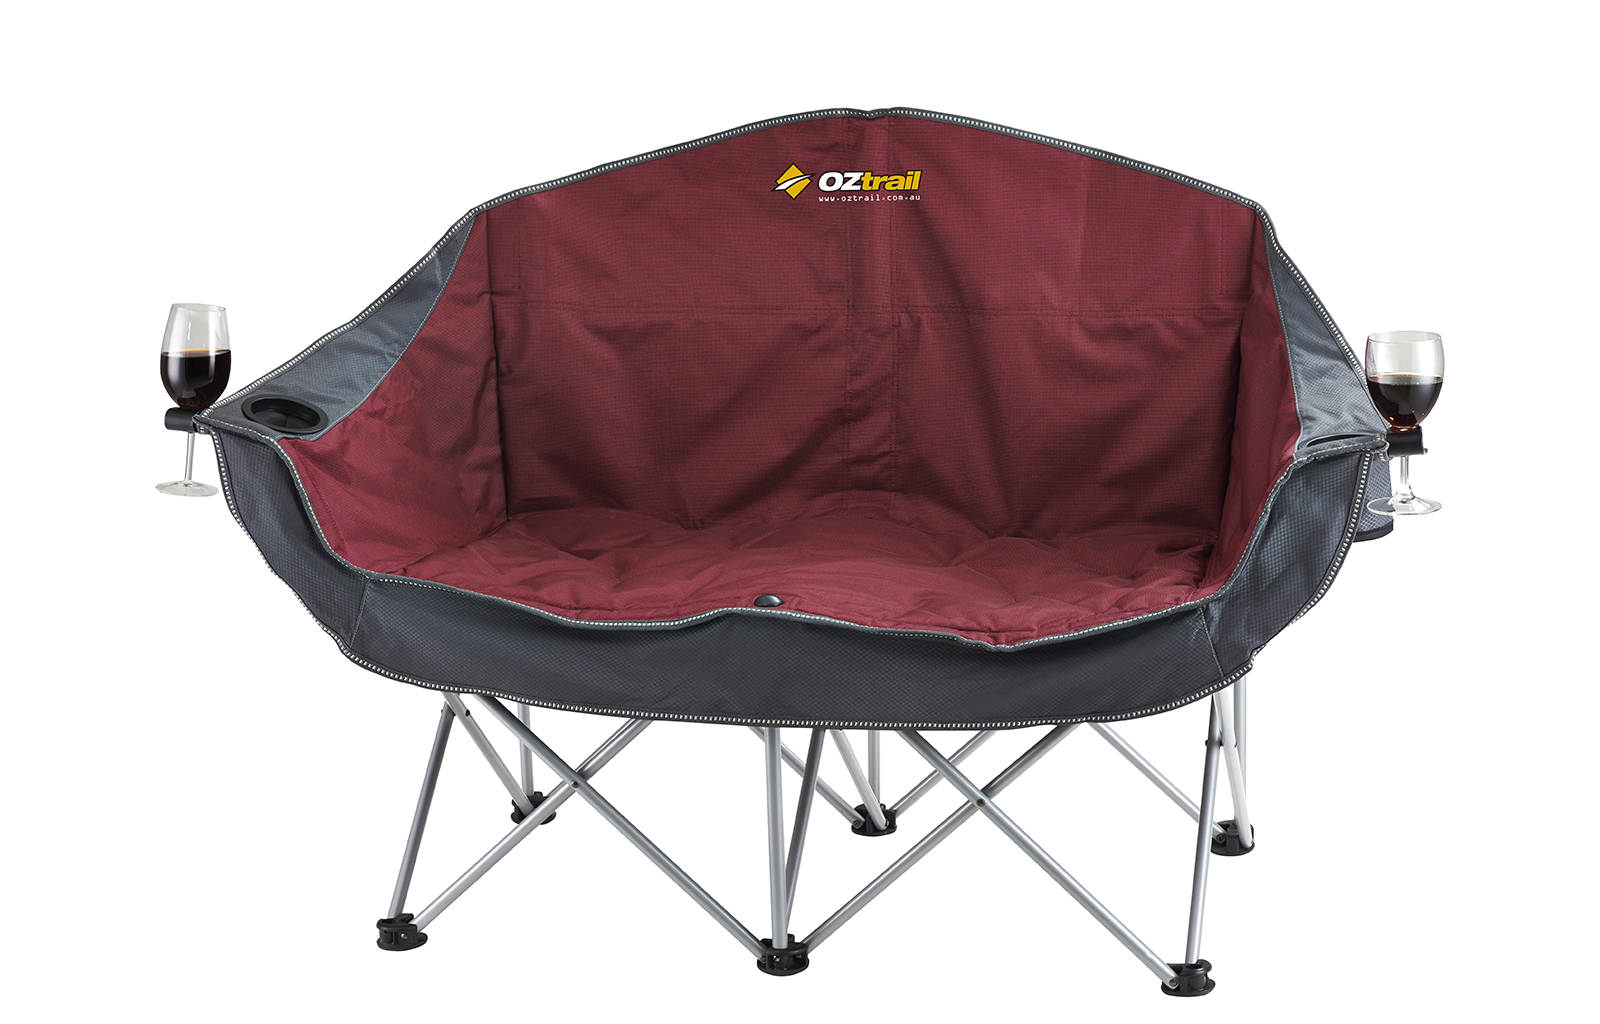 Best Camp Chair Oztrail Double Galaxy Sofa 2 Seat Lounge Arms Folding